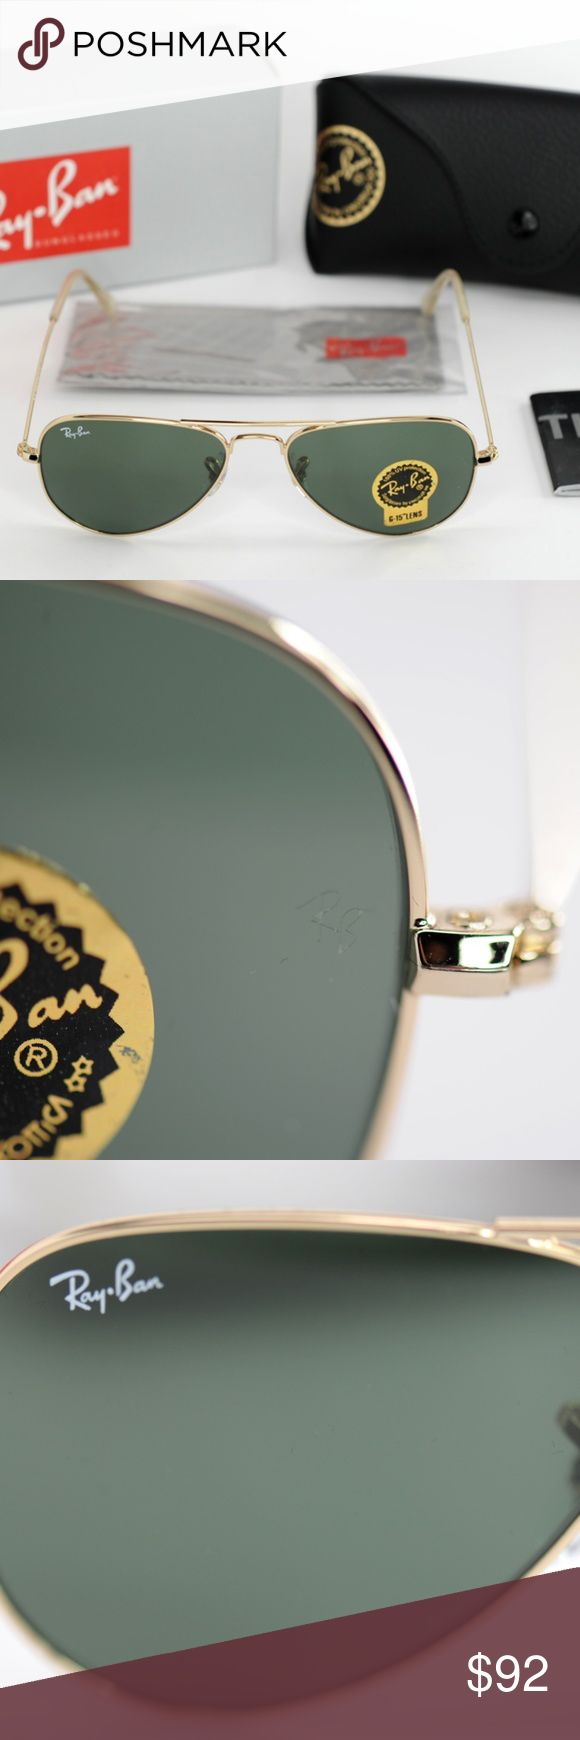 RayBan Aviator x-Small RB3044 Gold Metal Frame BRAND NEW! NEVER BEEN USED! UNOPENED BOX! MINT CONDITION! Model Number: RB3044 Color Number: L0207 Style: Aviator  Frame Material: Metal Frame Color: Gold Lenses: Mirror G-15 XLT Shape: Pilot Size Lens-Bridge: 52 14 Temple Length: 135  UPC: 805289602071  We ship within 24 Hours after the  payment is cleared (Except weekends   and holidays).  Customer Satisfaction 100% Guaranteed. Ray-Ban Accessories Sunglasses